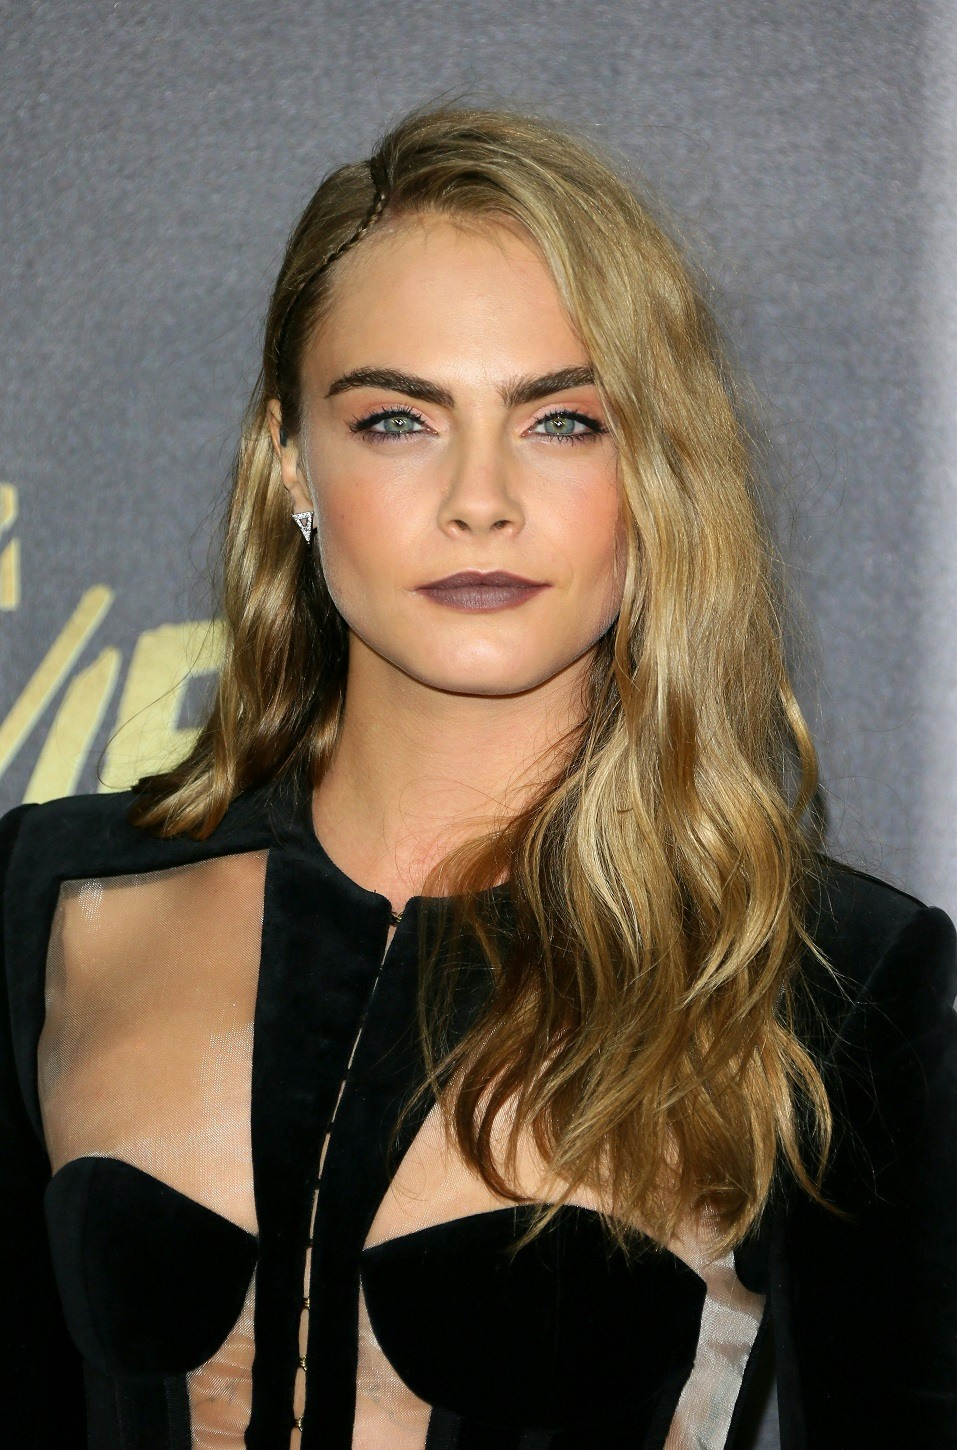 Actress/model Cara Delevingne